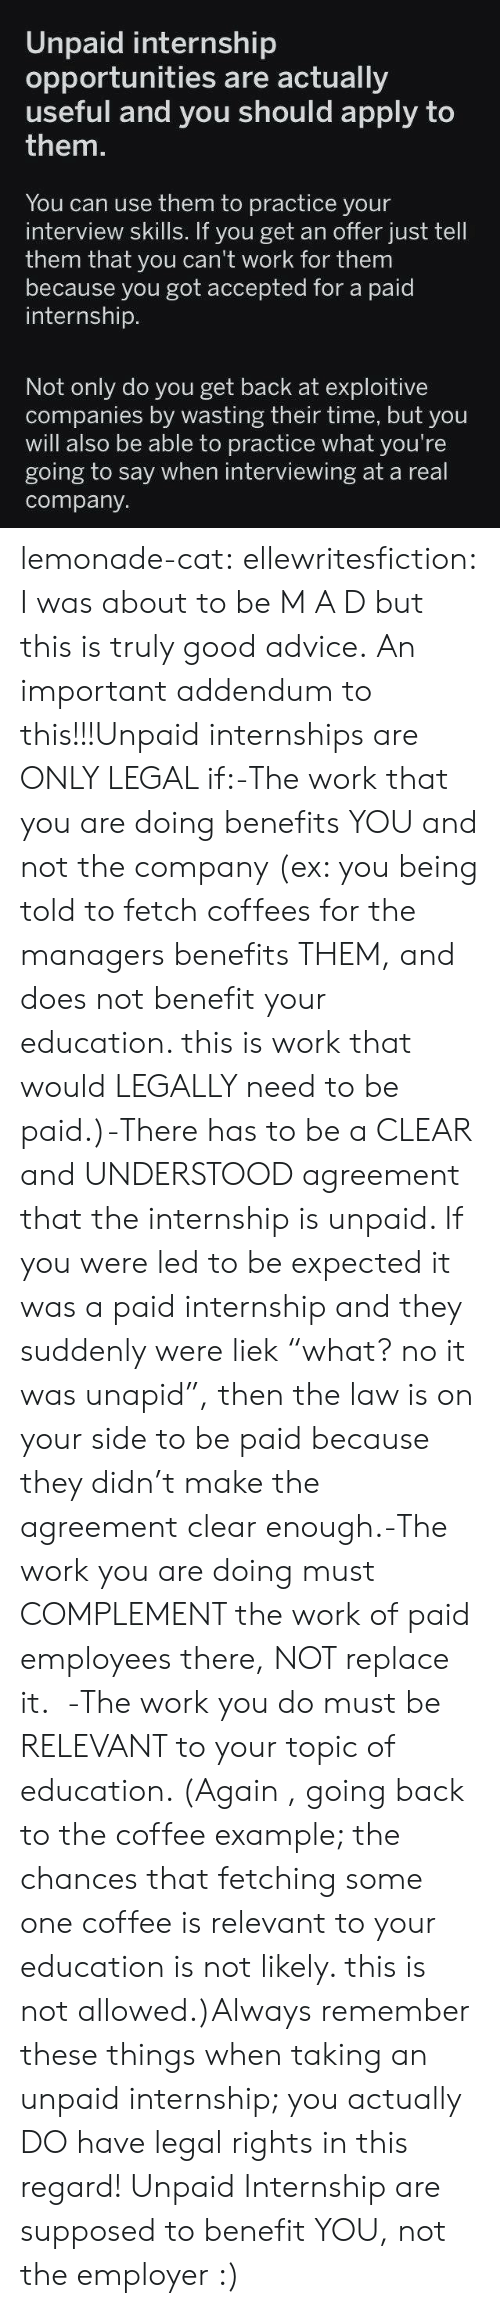 "fetch: Unpaid internship  opportunities are actually  useful ply to  them.  and you should ap  You can use them to practice your  interview skills. If you get an offer just tell  them that you can't work for them  because you got accepted for a paid  internship.  Not only do you get back at exploitive  companies by wasting their time, but you  will also be able to practice what you're  going to say when interviewing at a real  company lemonade-cat: ellewritesfiction: I was about to be M A D but this is truly good advice. An important addendum to this!!!Unpaid internships are ONLY LEGAL if:-The work that you are doing benefits YOU and not the company (ex: you being told to fetch coffees for the managers benefits THEM, and does not benefit your education. this is work that would LEGALLY need to be paid.)-There has to be a CLEAR and UNDERSTOOD agreement that the internship is unpaid. If you were led to be expected it was a paid internship and they suddenly were liek ""what? no it was unapid"", then the law is on your side to be paid because they didn't make the agreement clear enough.-The work you are doing must COMPLEMENT the work of paid employees there, NOT replace it.  -The work you do must be RELEVANT to your topic of education. (Again , going back to the coffee example; the chances that fetching some one coffee is relevant to your education is not likely. this is not allowed.)Always remember these things when taking an unpaid internship; you actually DO have legal rights in this regard! Unpaid Internship are supposed to benefit YOU, not the employer :)"